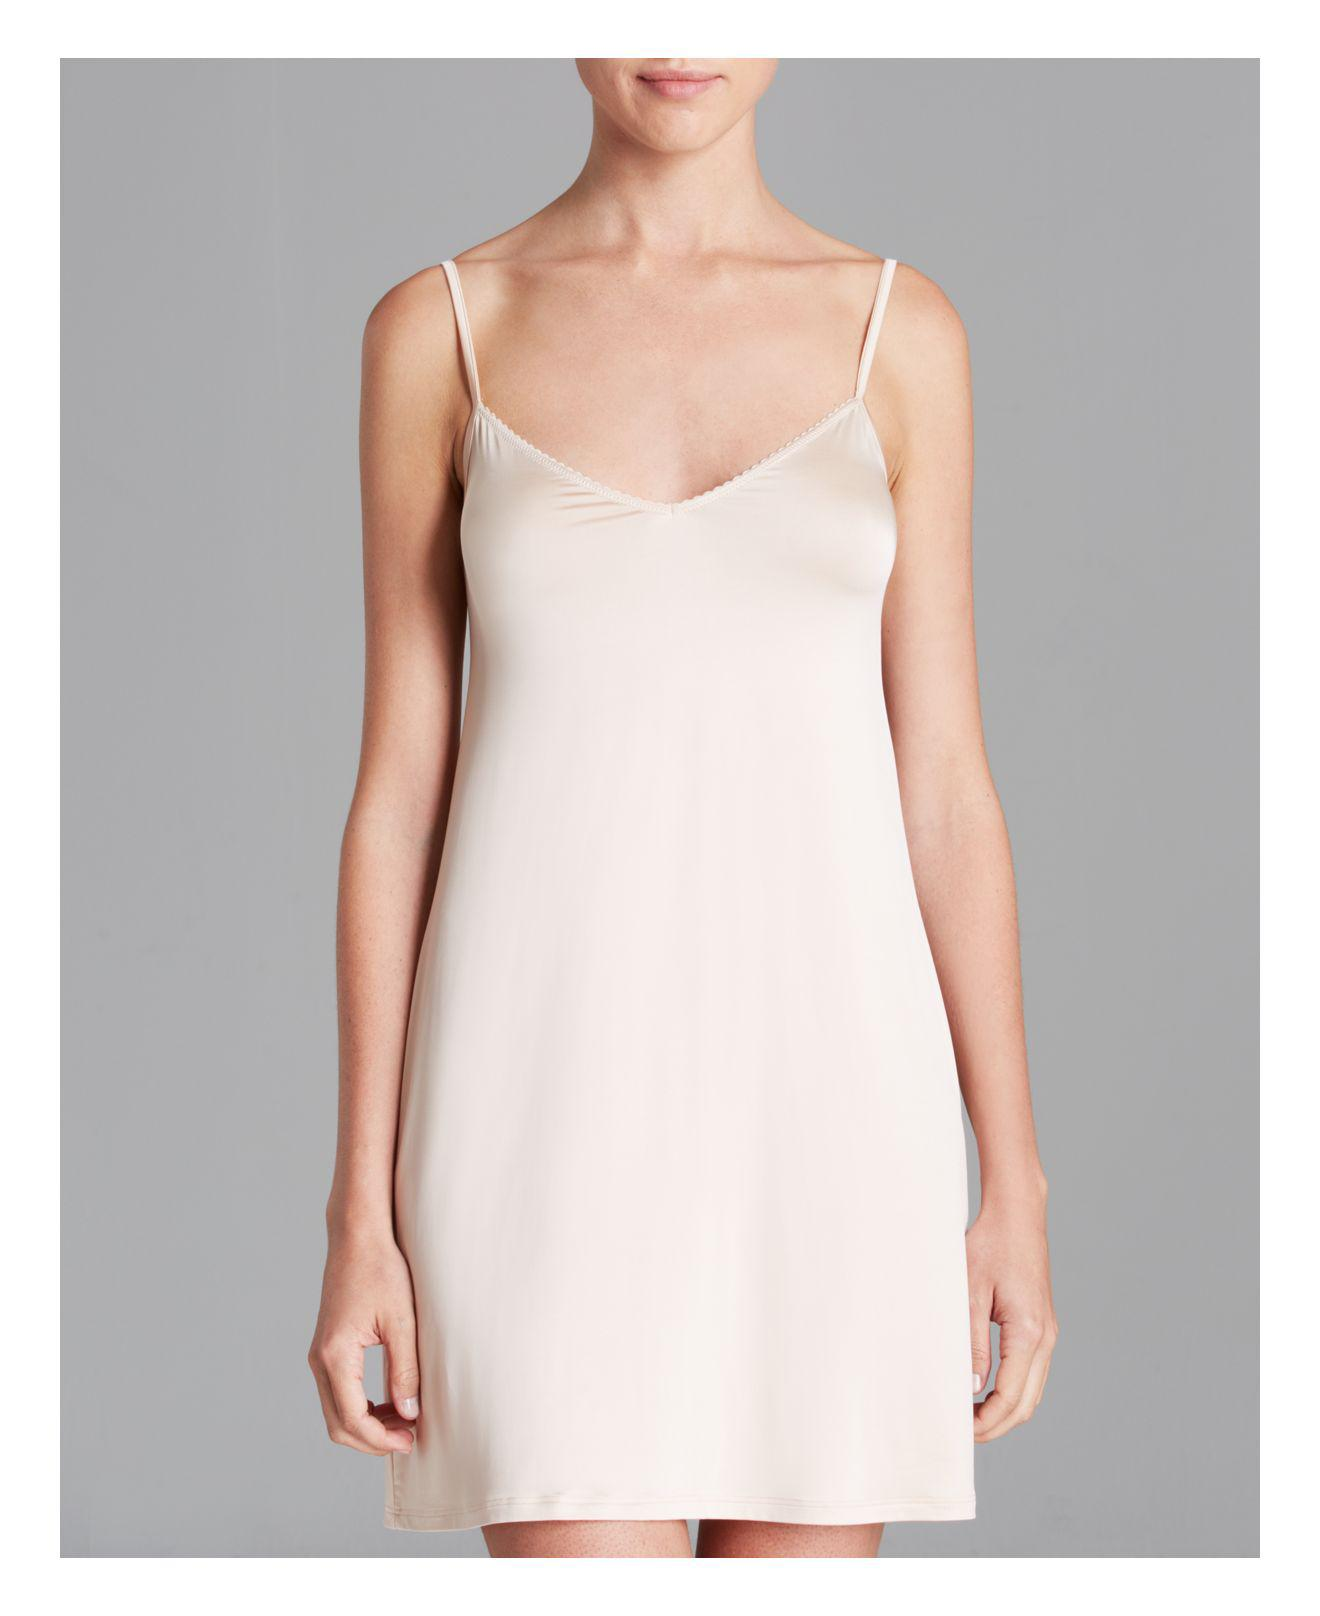 Womens Babydoll - Satin Deluxe Hanro Good Selling Sale Online Cheap Sale Manchester Great Sale Manchester Online Prices EWL7WHrqWT